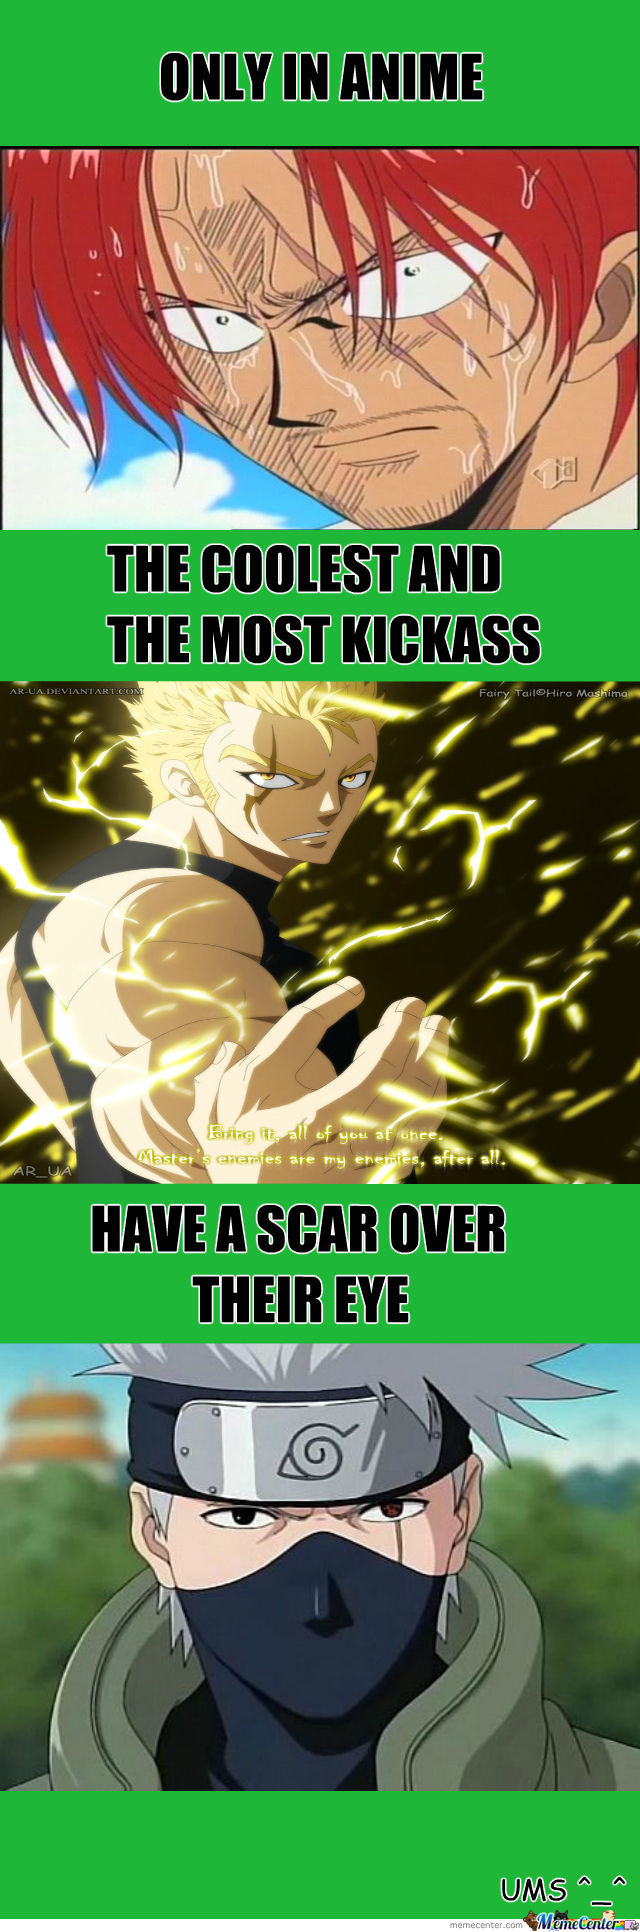 Yeah! Only In Anime